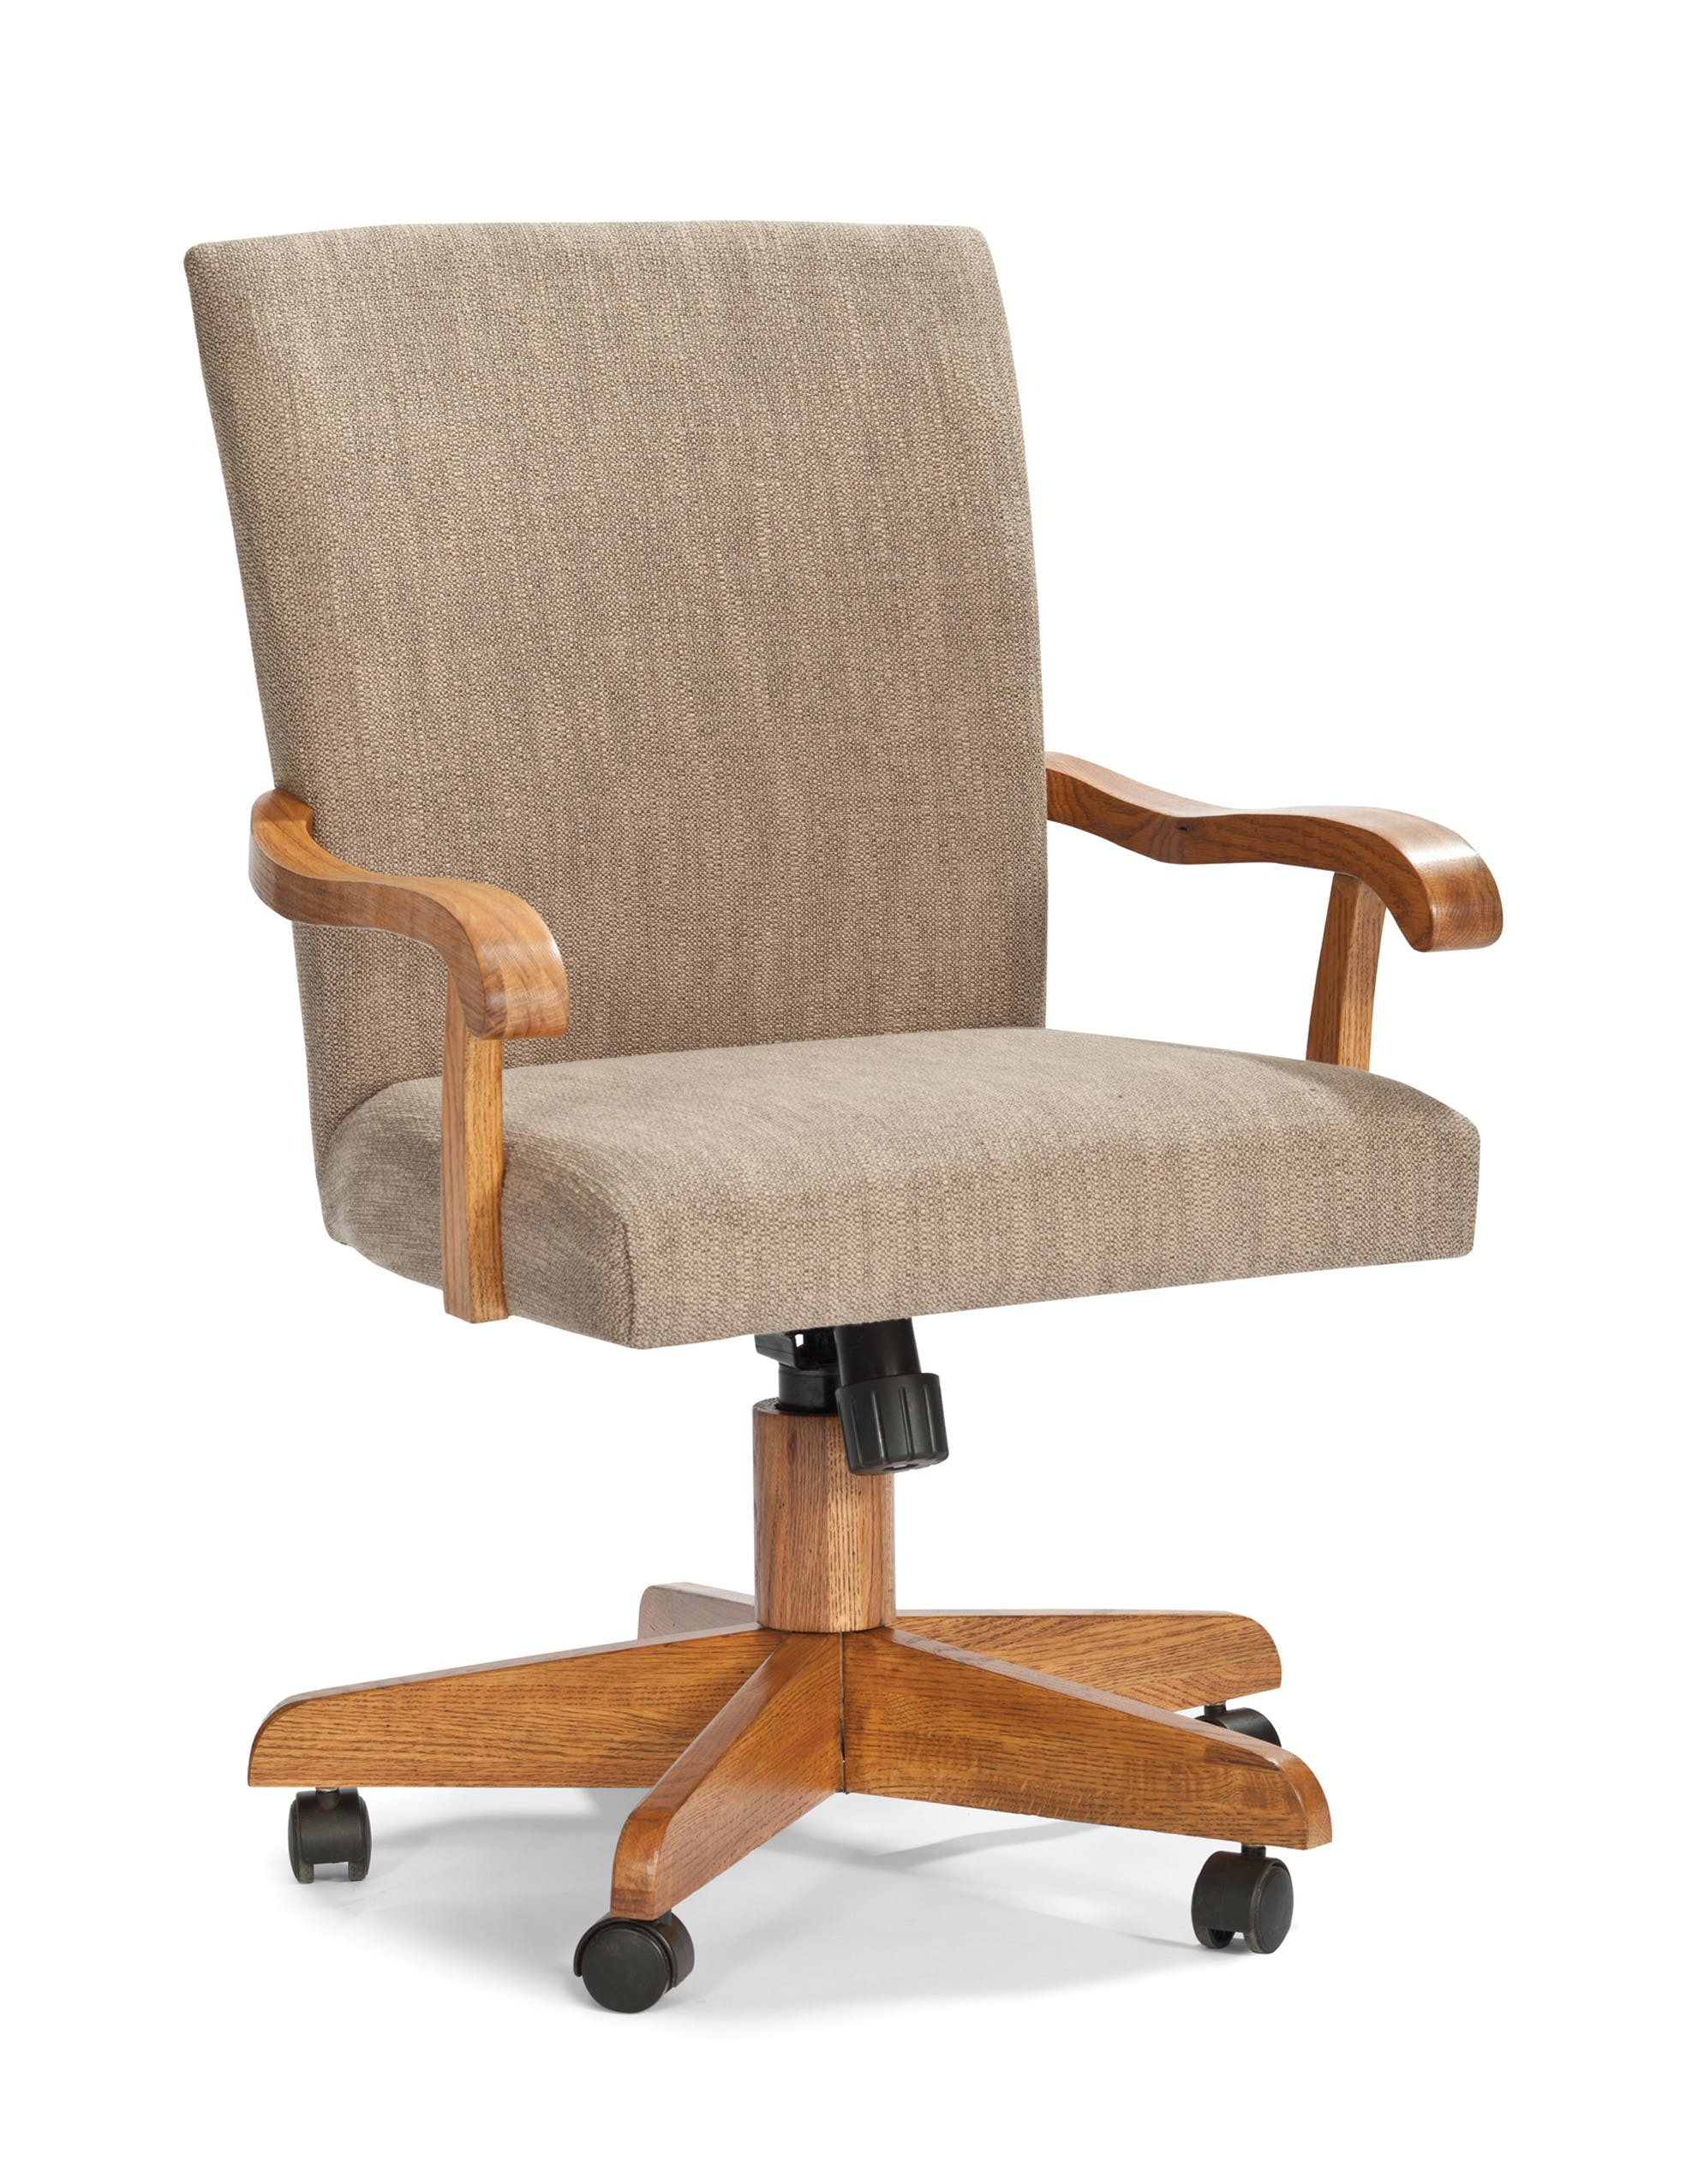 Wondrous Sg Swivel Chair Intercon Furniture Dailytribune Chair Design For Home Dailytribuneorg